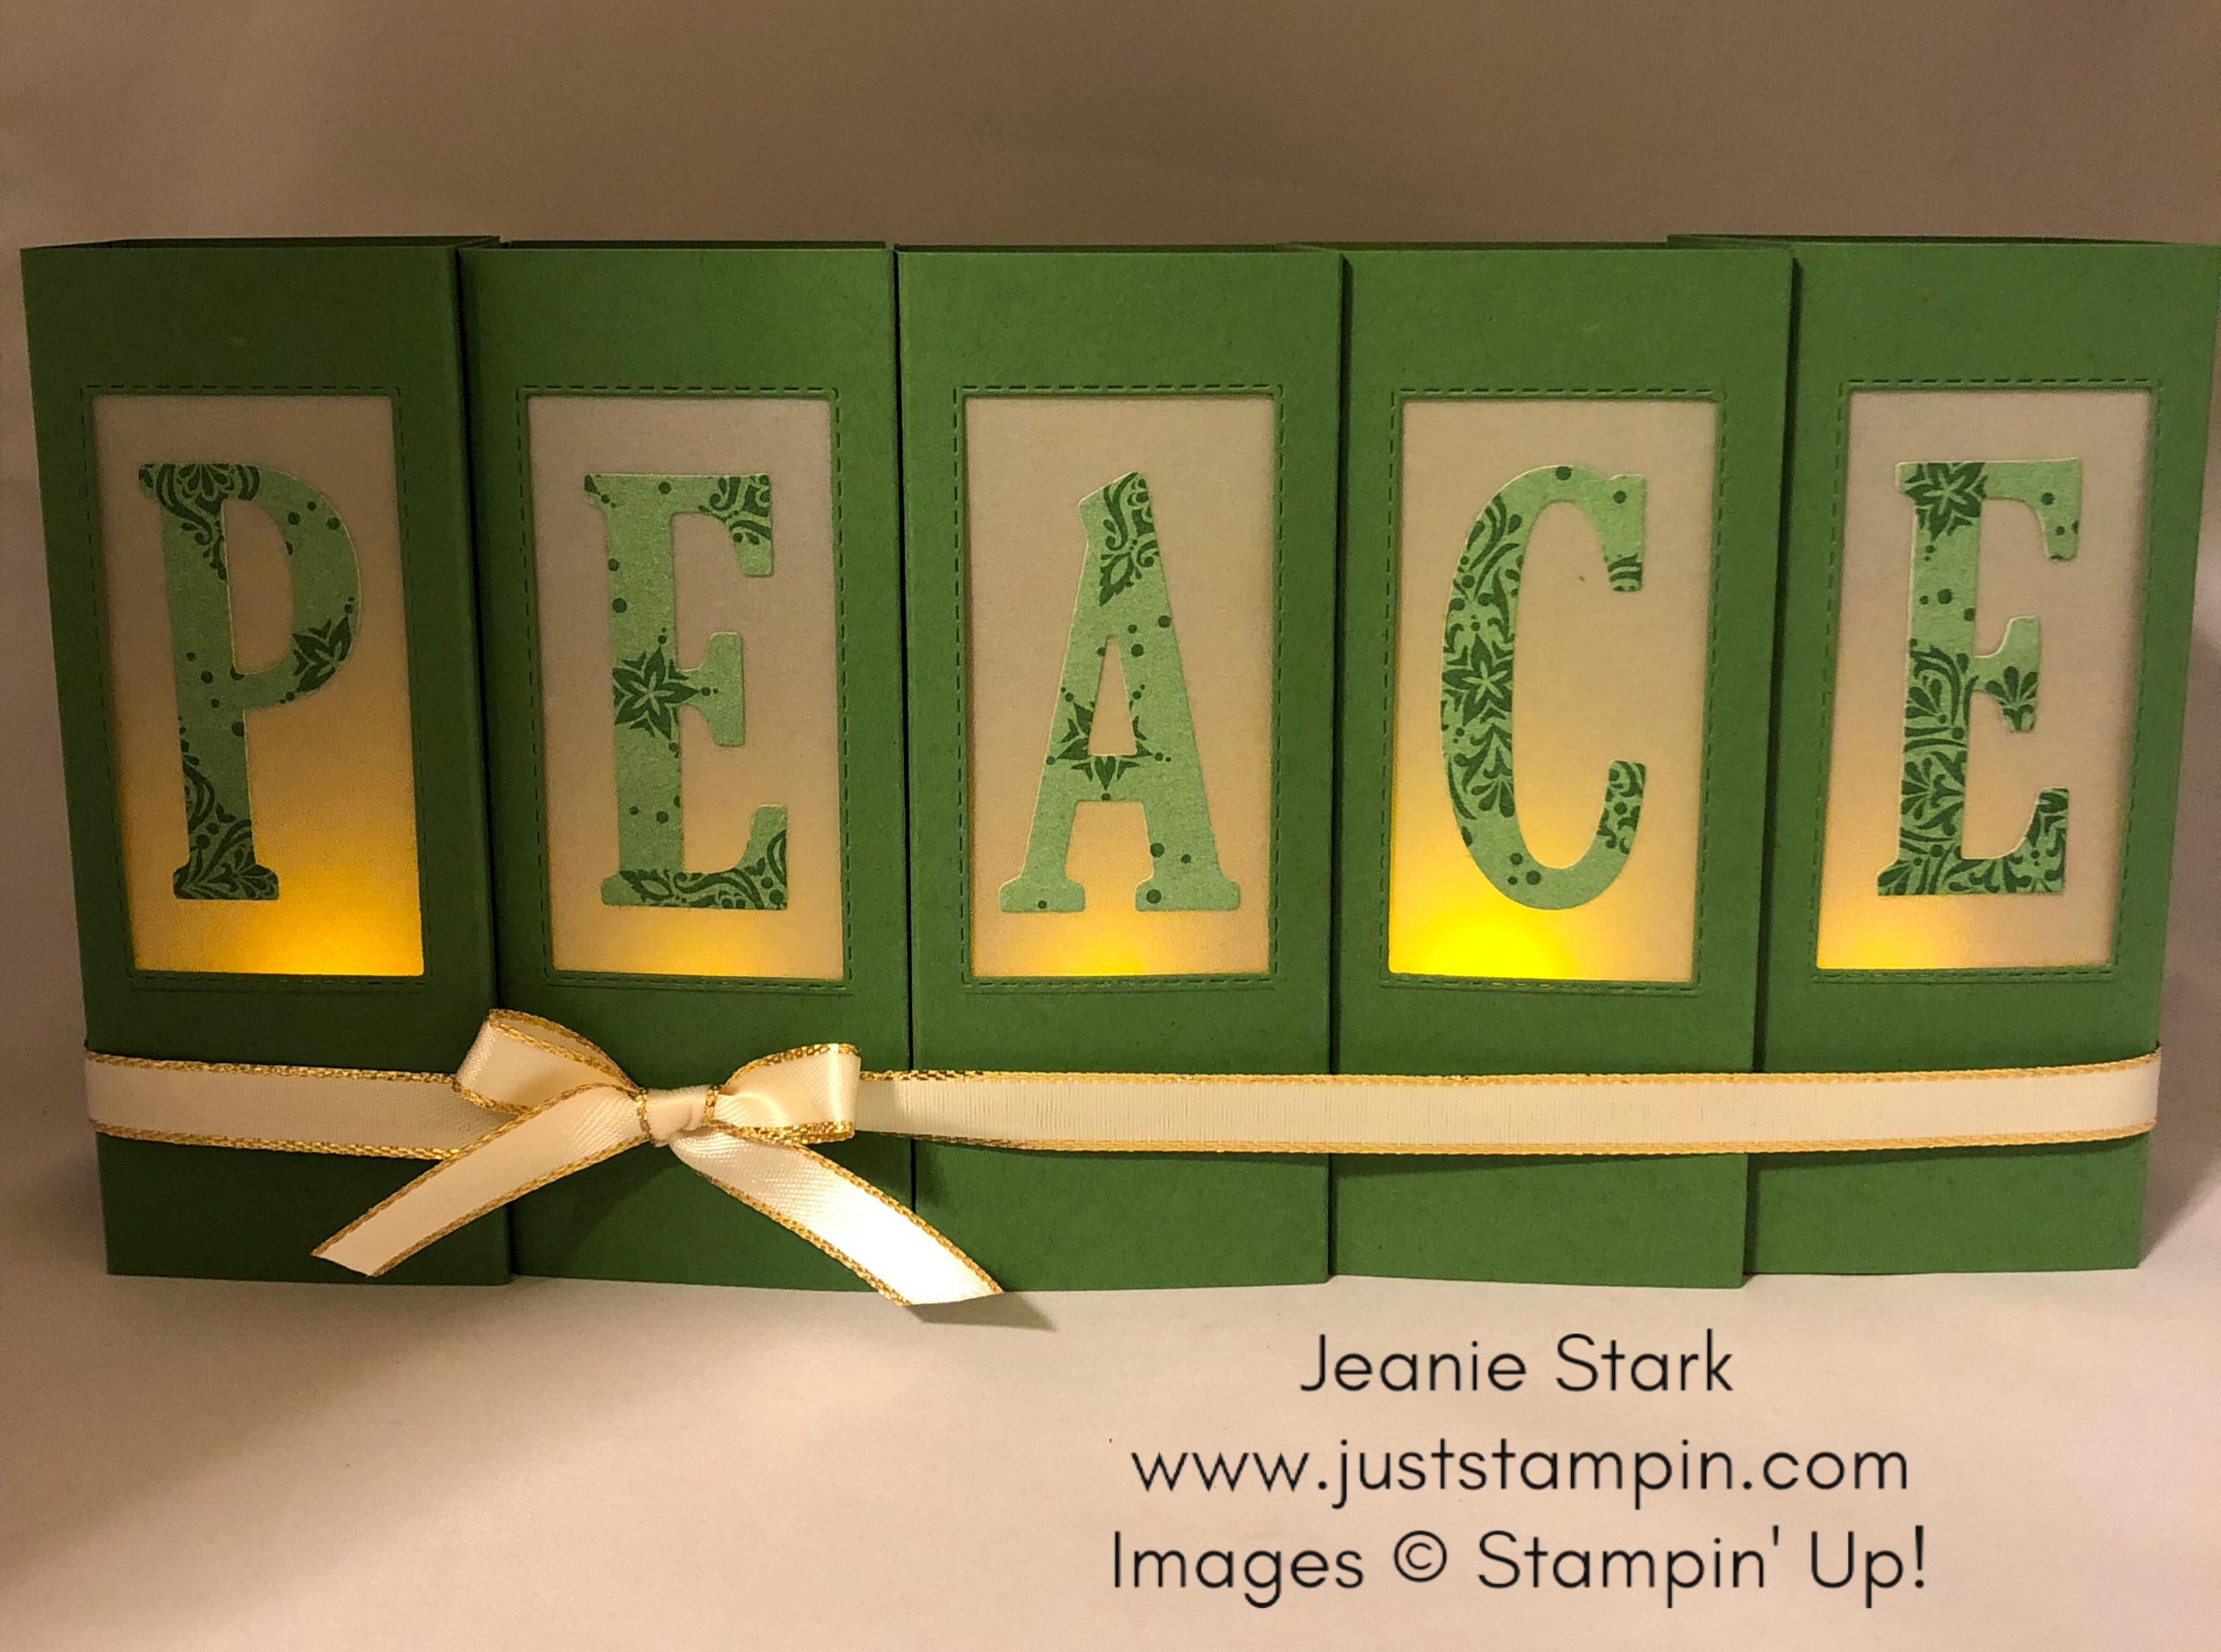 Stampin Up Rectangle Stitched Framelits Dies and Large Letter Framelits Peace Luminaries for Christmas Home decor idea - Jeanie Stark StampinUp